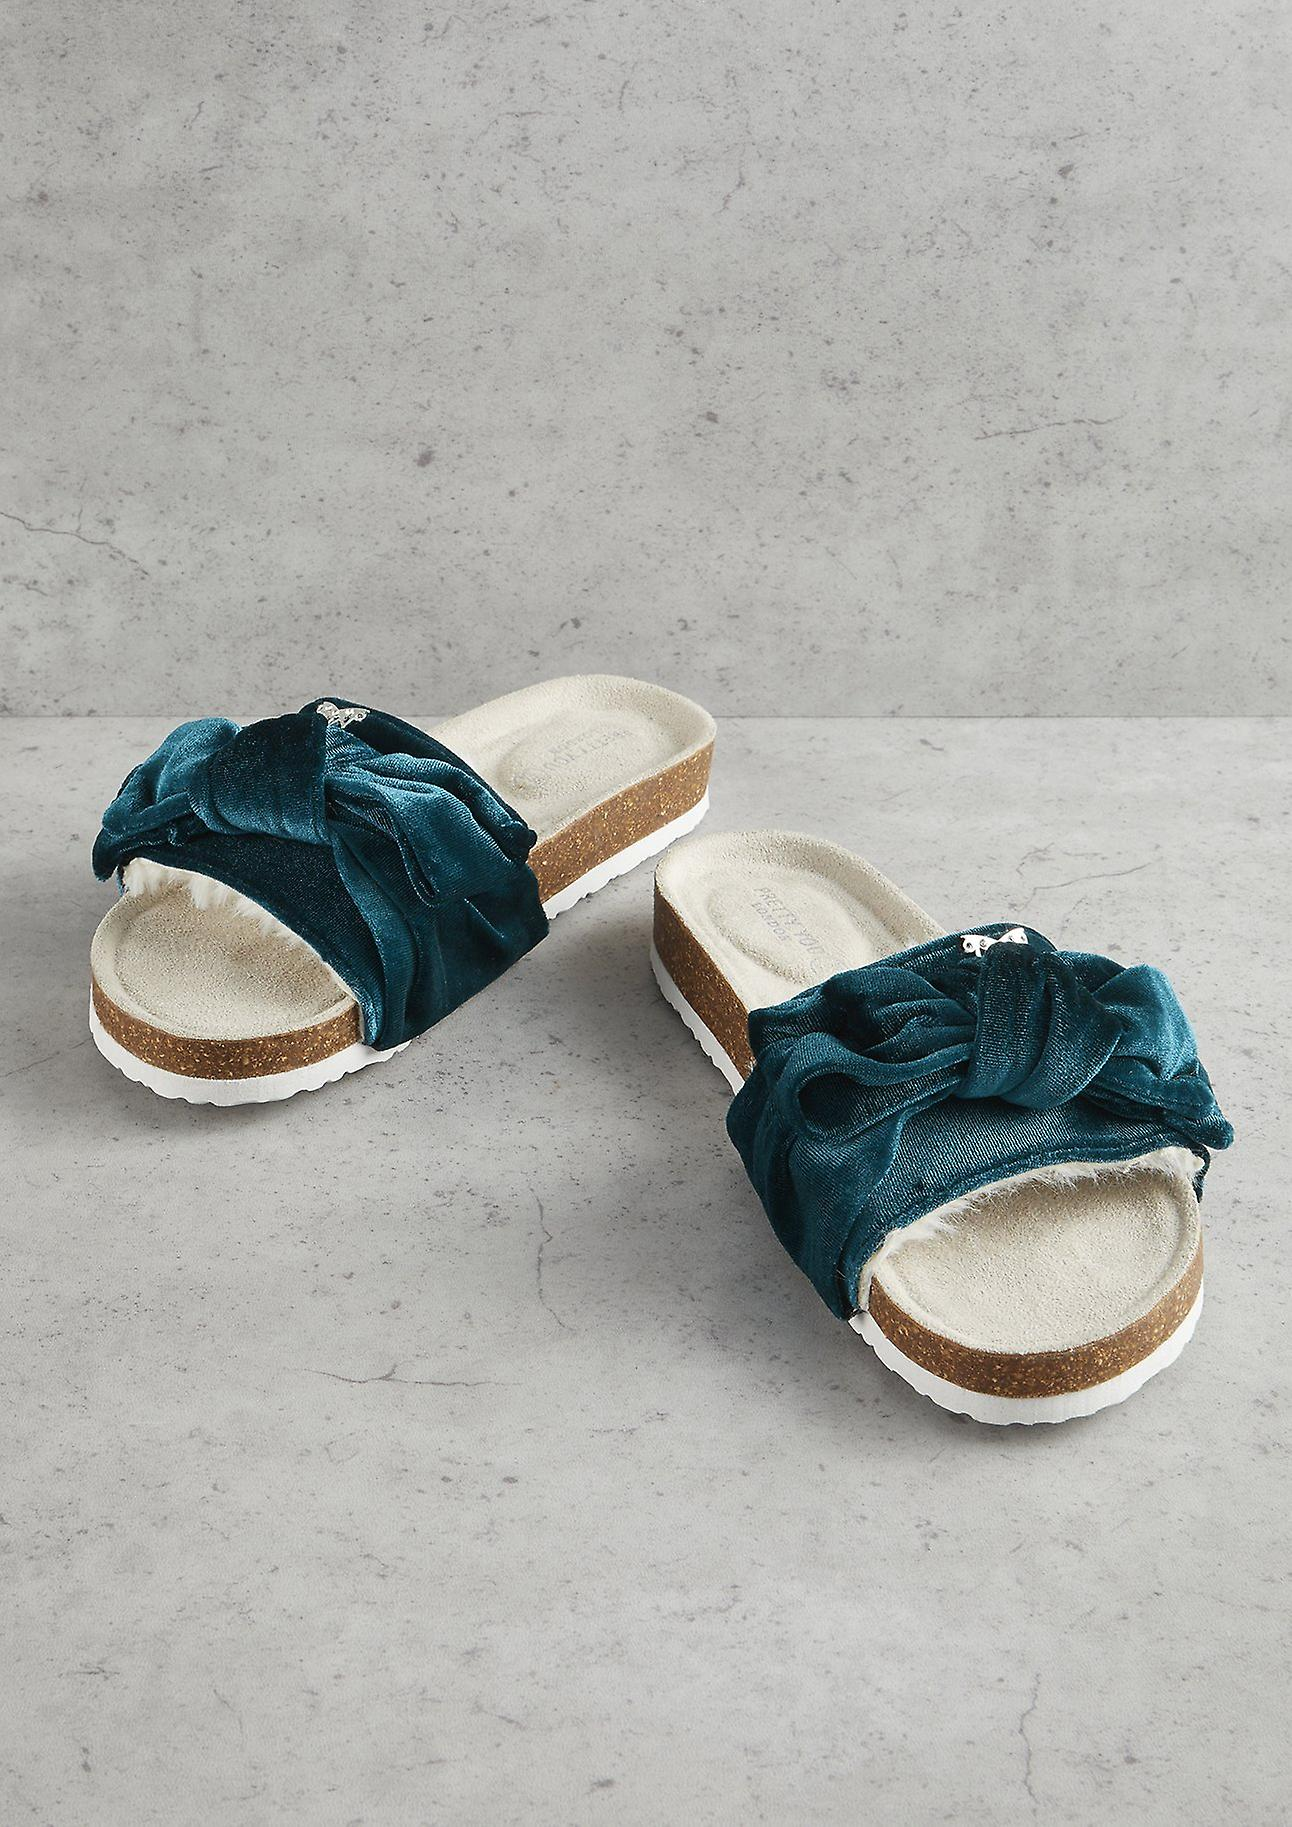 Emerald Footbed Bow Velour Bow Velour Emerald Footbed Velour Bow Emerald Footbed Velour Emerald wZXSU